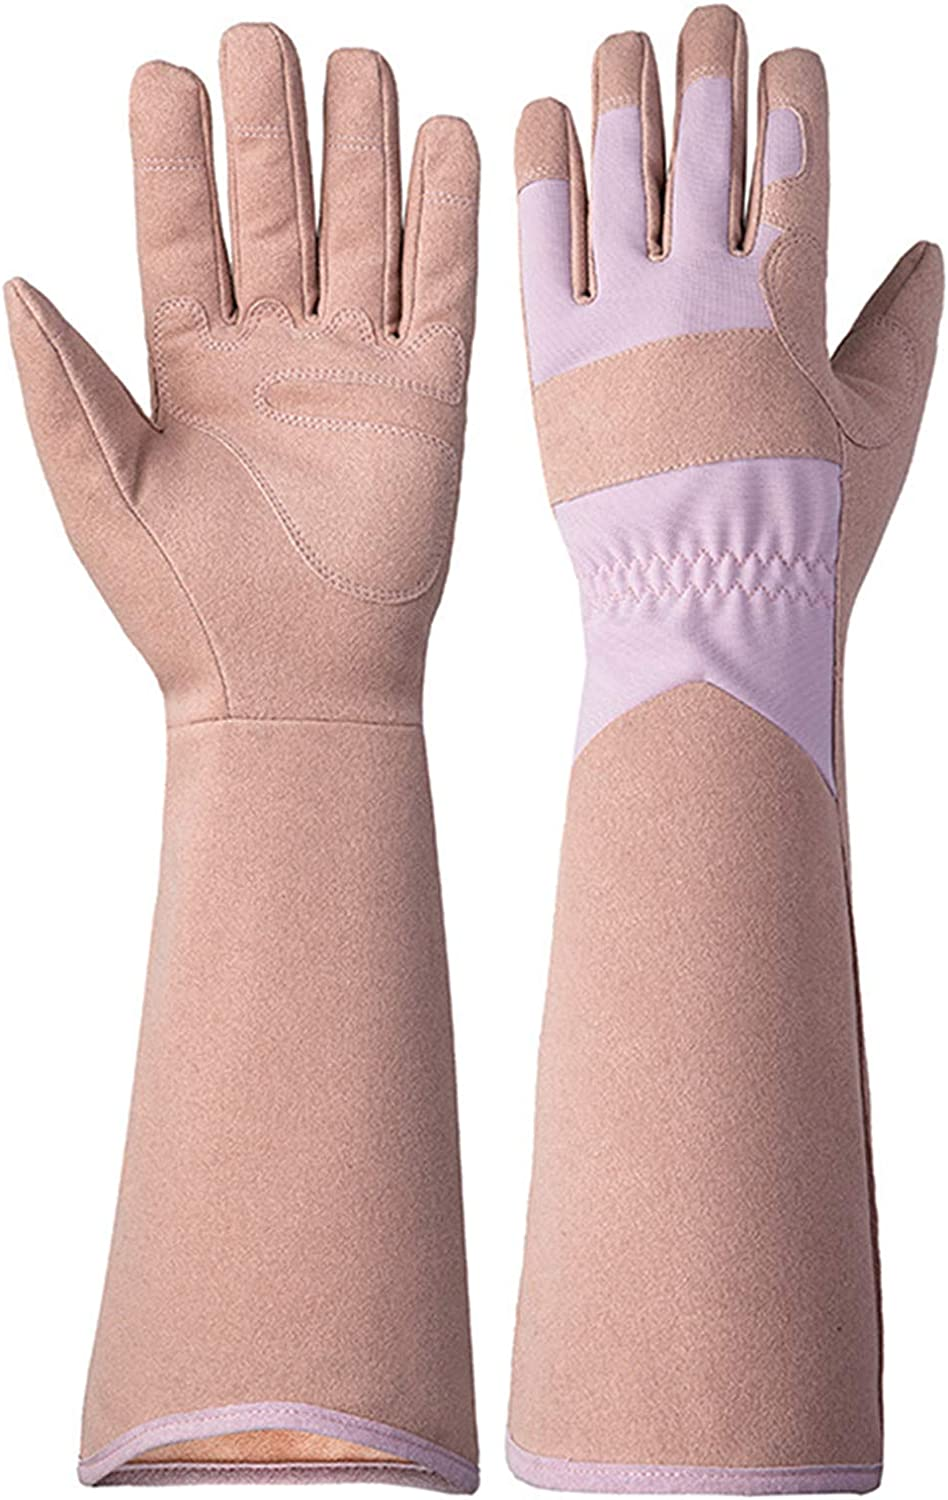 Tulsa Mall sale Gardening Gloves for Women Men Rose Lo Pruning Cut Thorn Proof